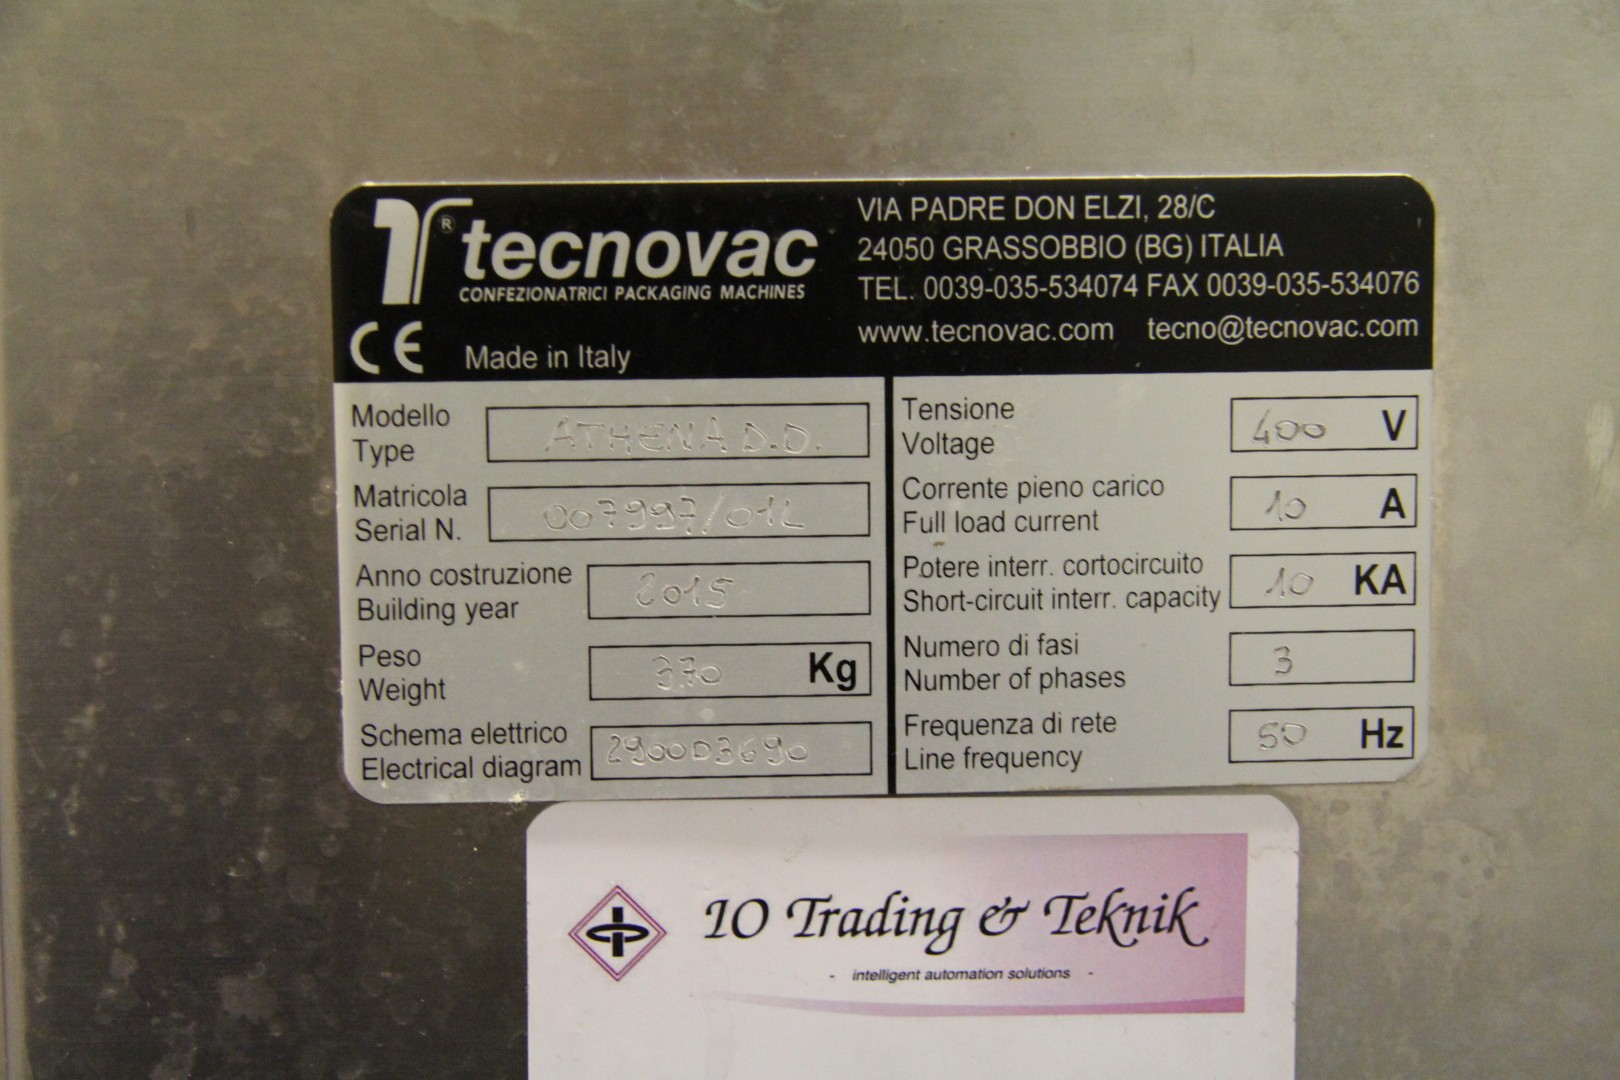 Schema Elettrico Golf 7 : Complete line: technovac athena dual tray sealer. 15 ps auction